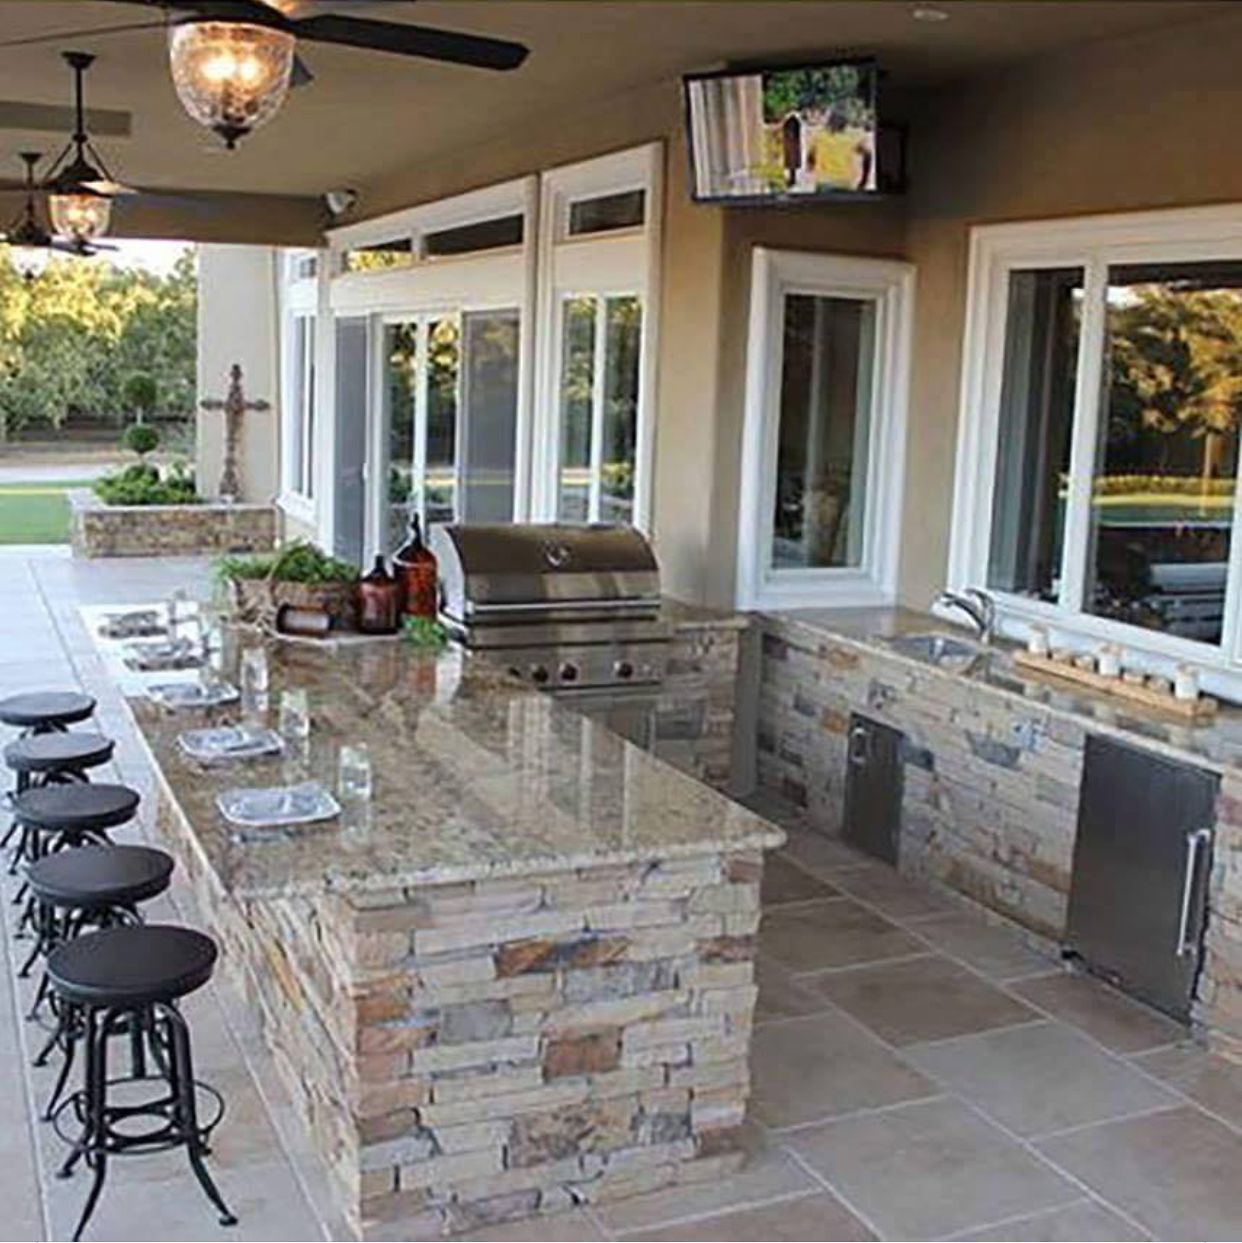 I D Move The Tv Because Of Smoke From The Grill Install A Window That Could Open Where The Small Window Is In The Corner Outdoor Kitchen Design Backyard Patio